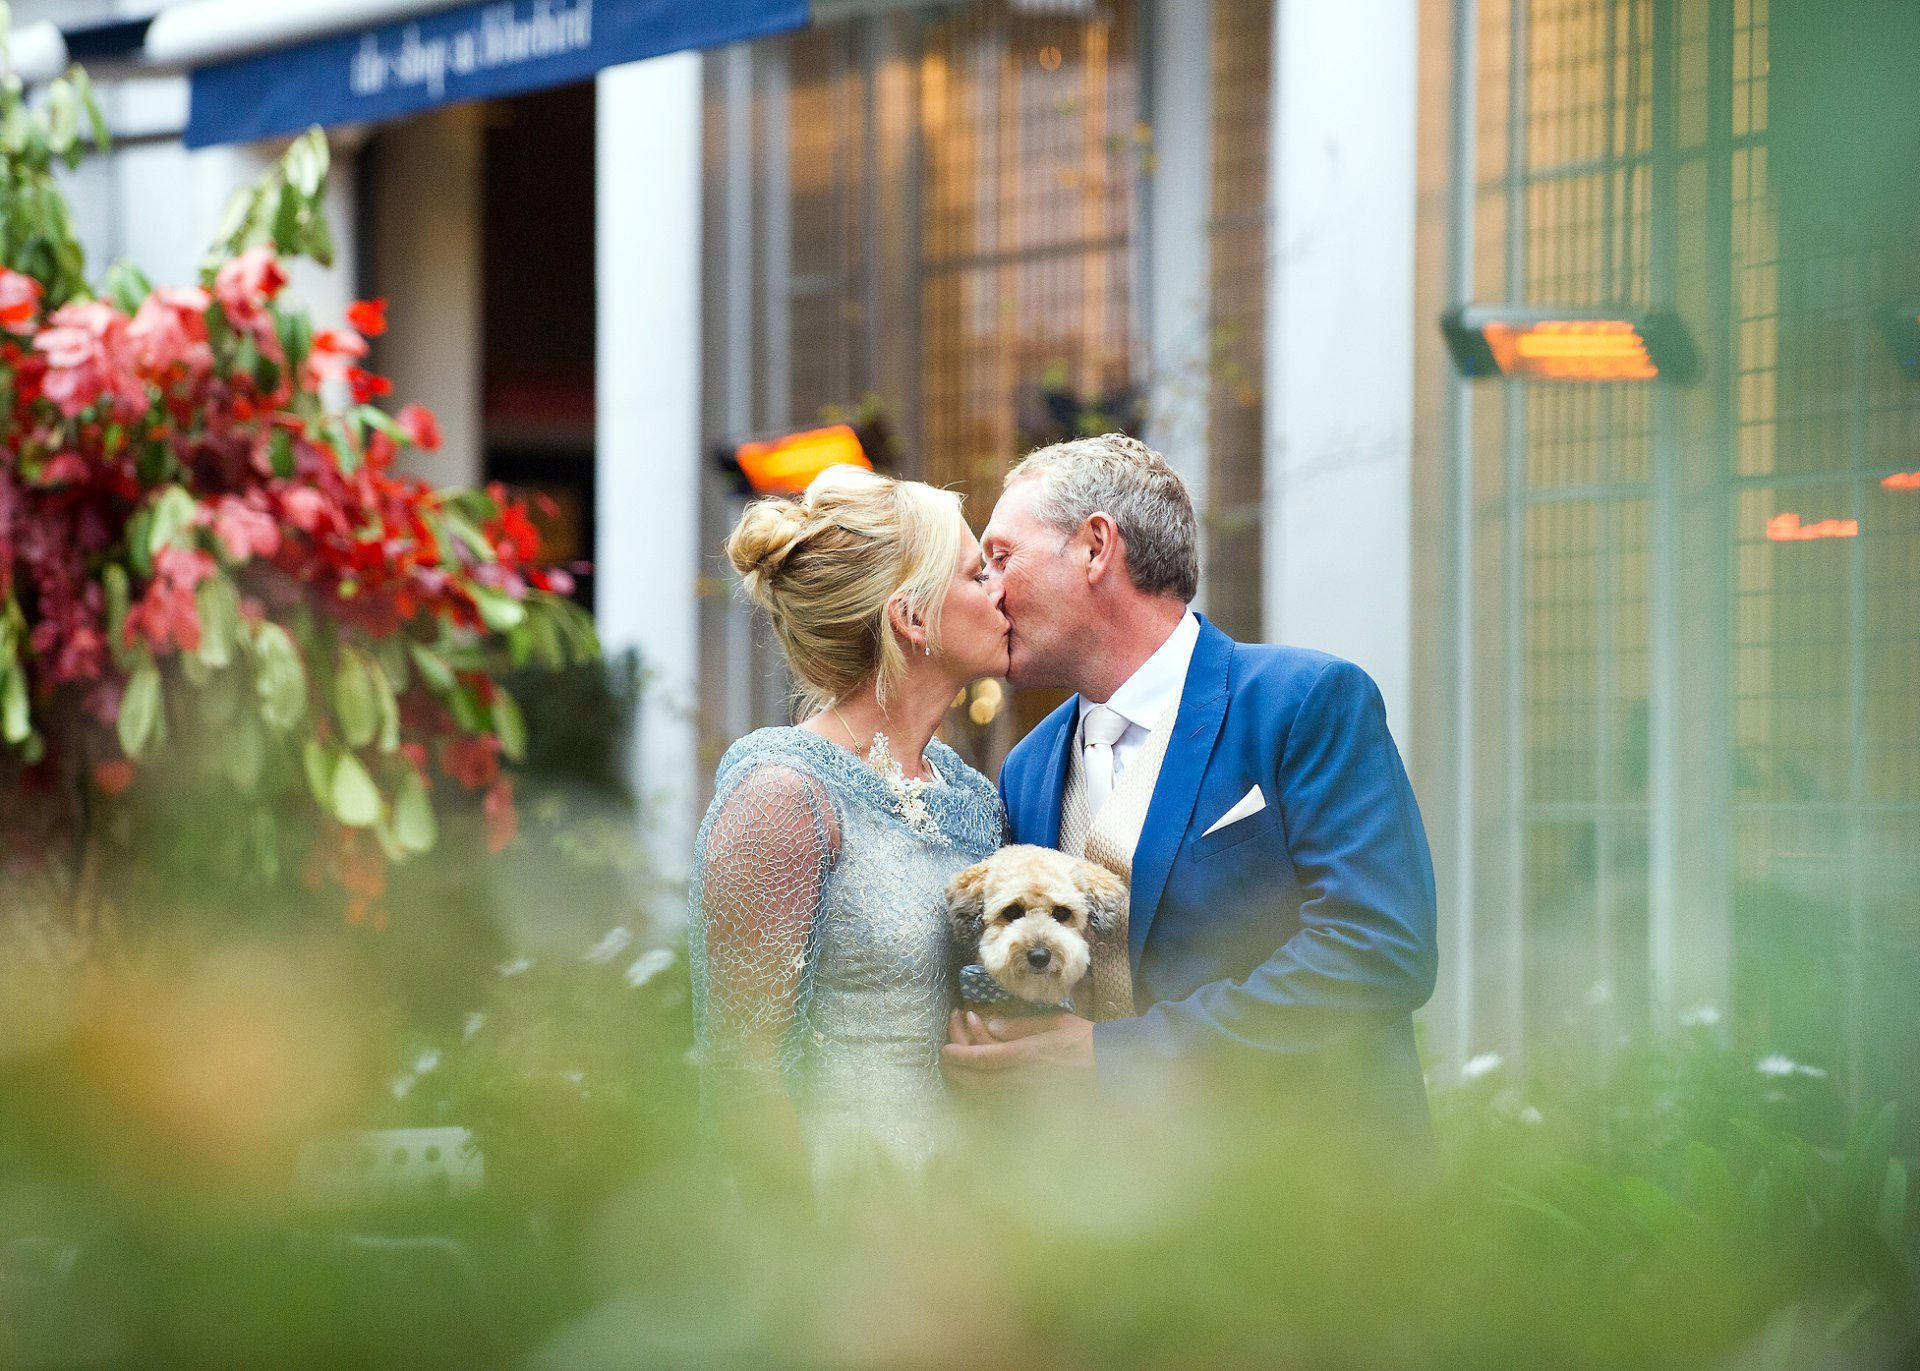 dog wedding photographer london showing a bride and groom with their little jackapoo just before their civil marriage ceremony at chelsea register office